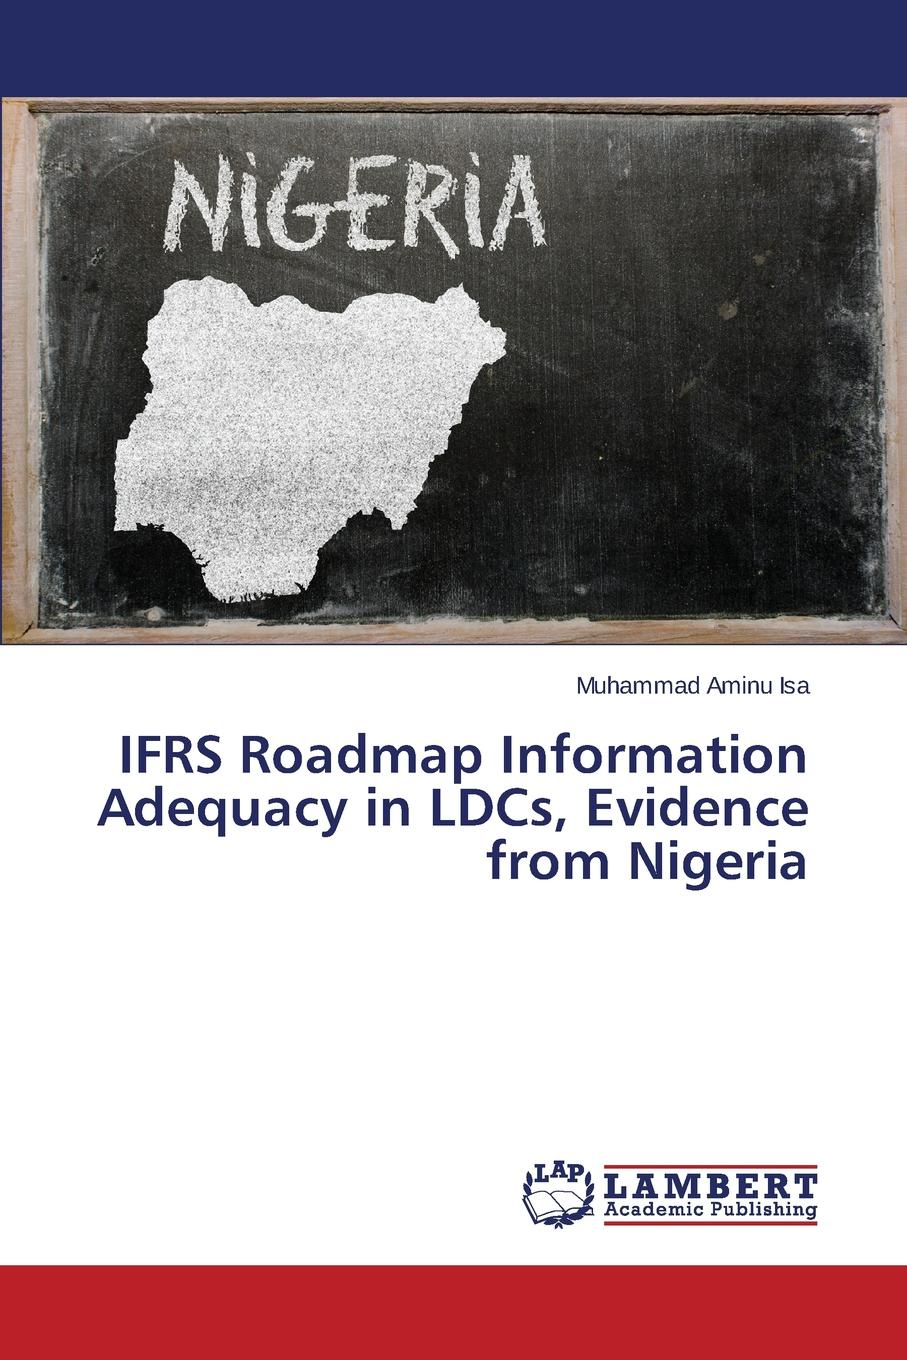 IFRS Roadmap Information Adequacy in LDCs, Evidence from Nigeria This report highlights the importance of roadmap information...